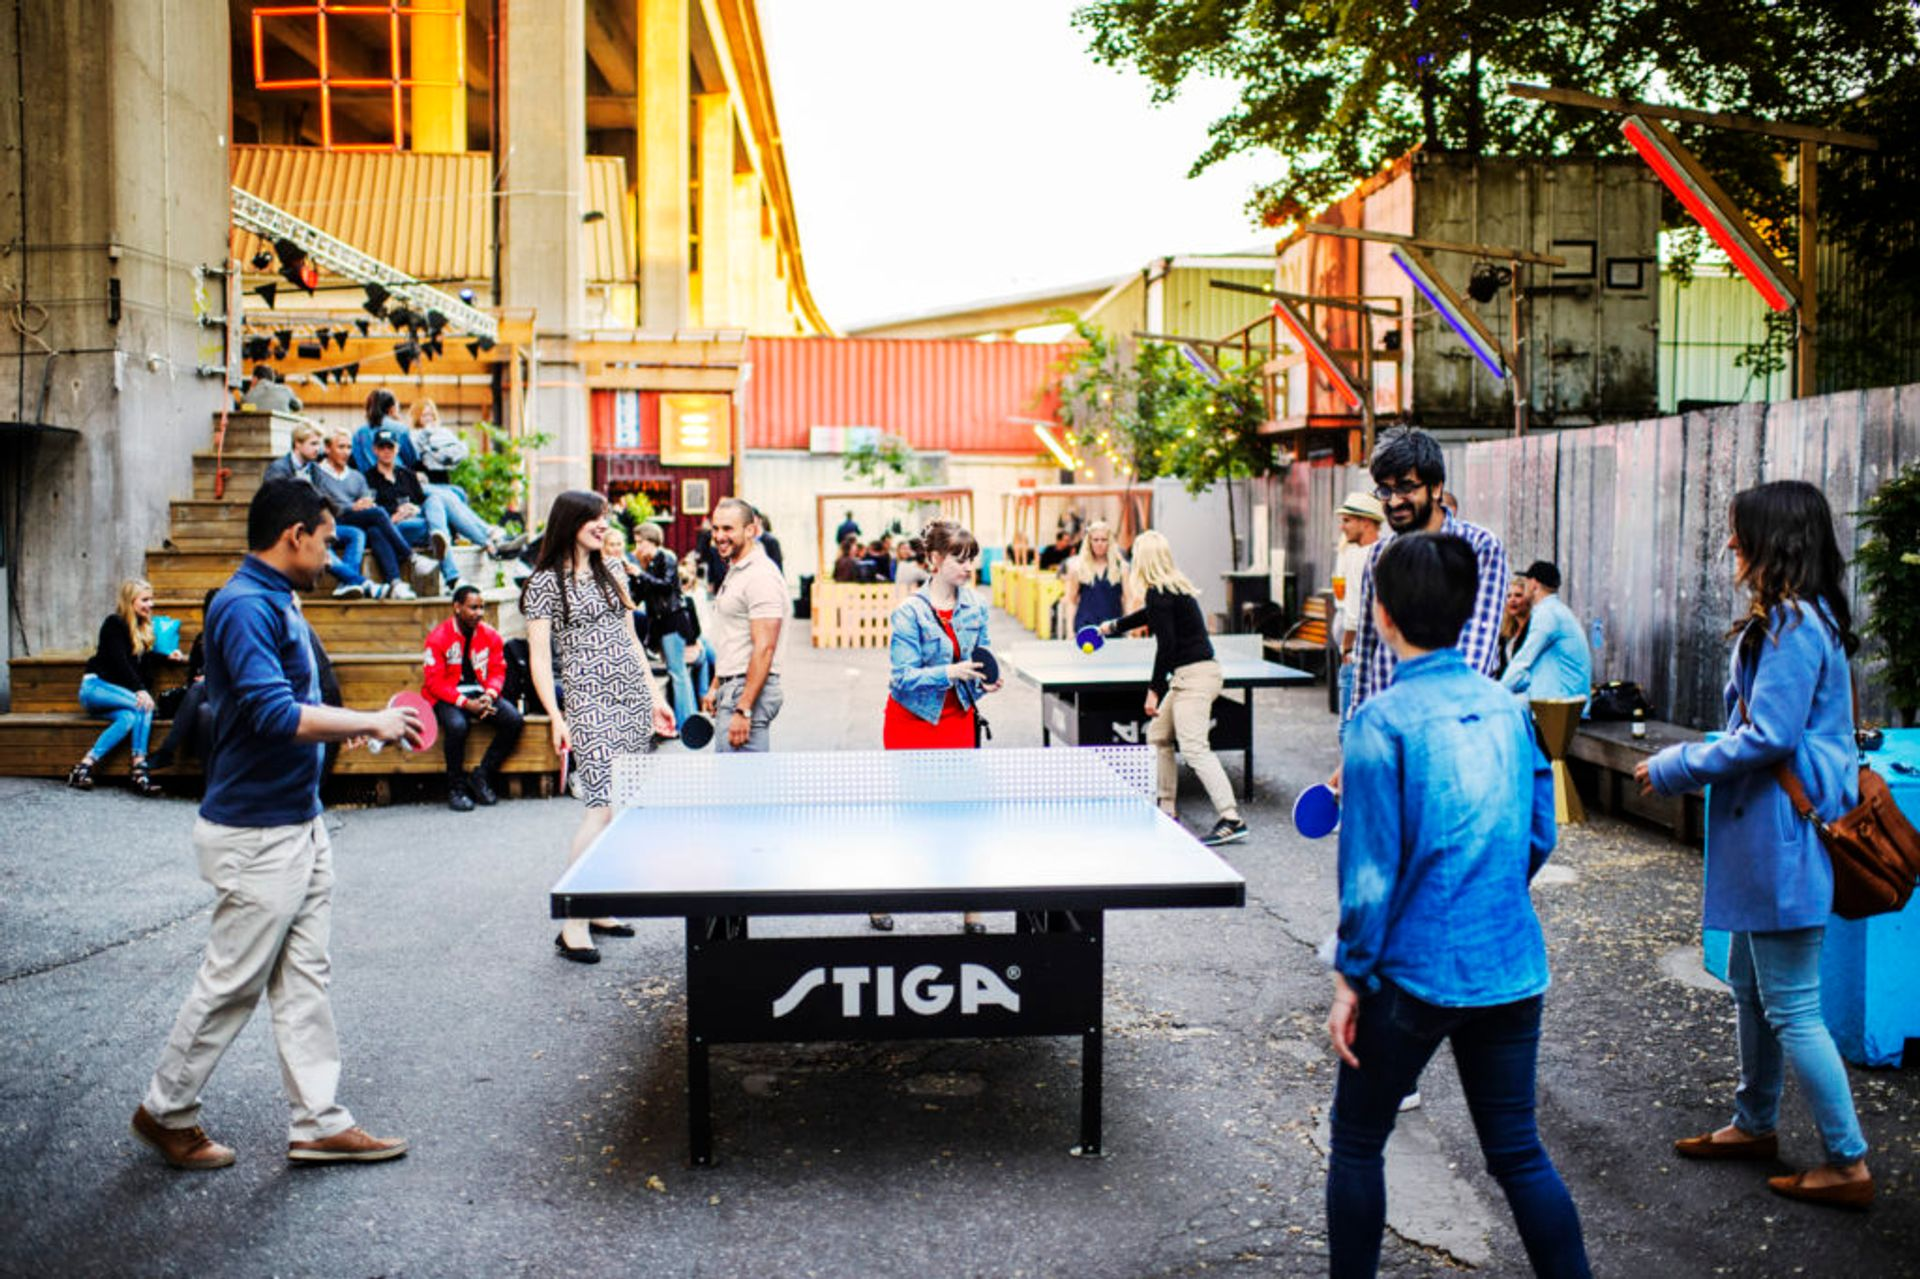 Students playing table tennis outside.